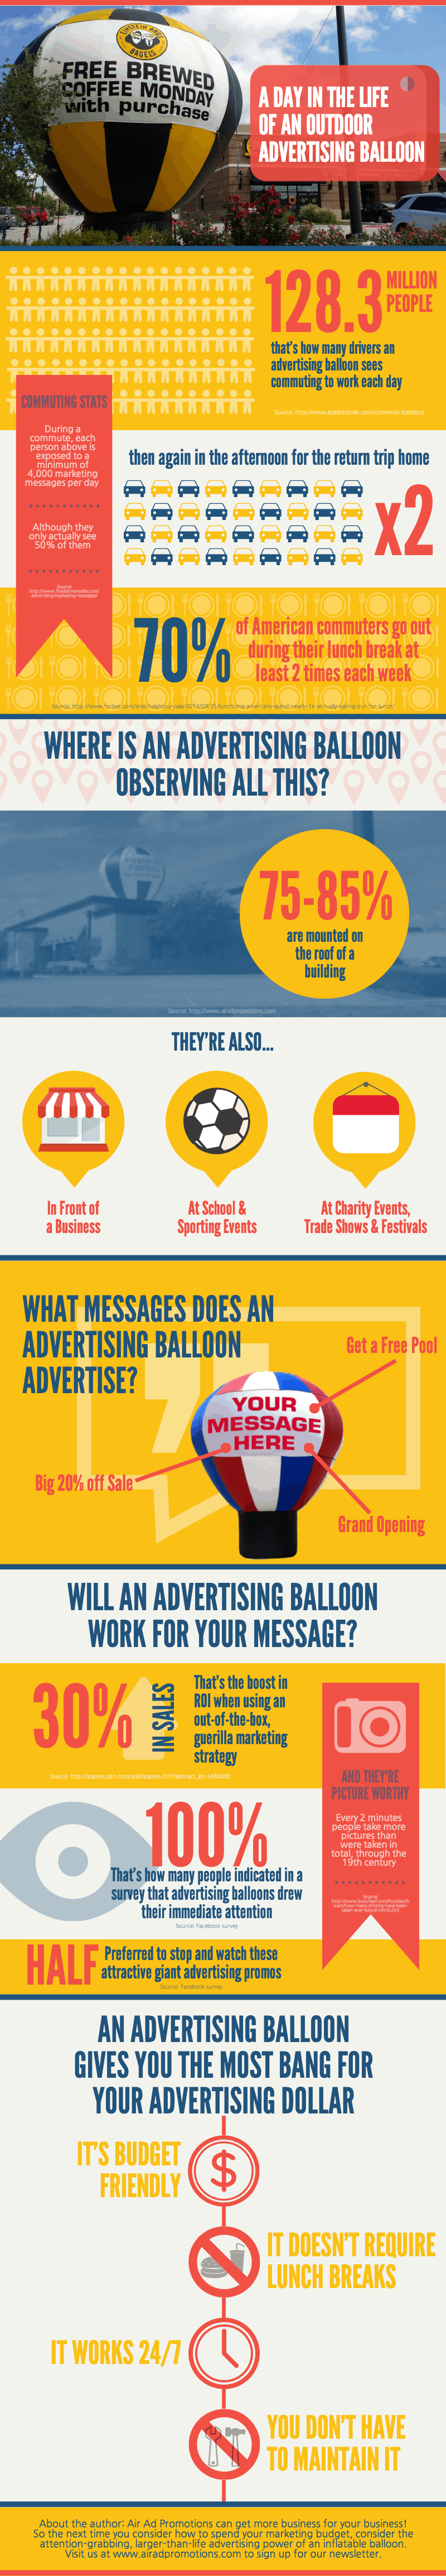 A Day in the Life of An Outdoor Advertising Balloon (4)